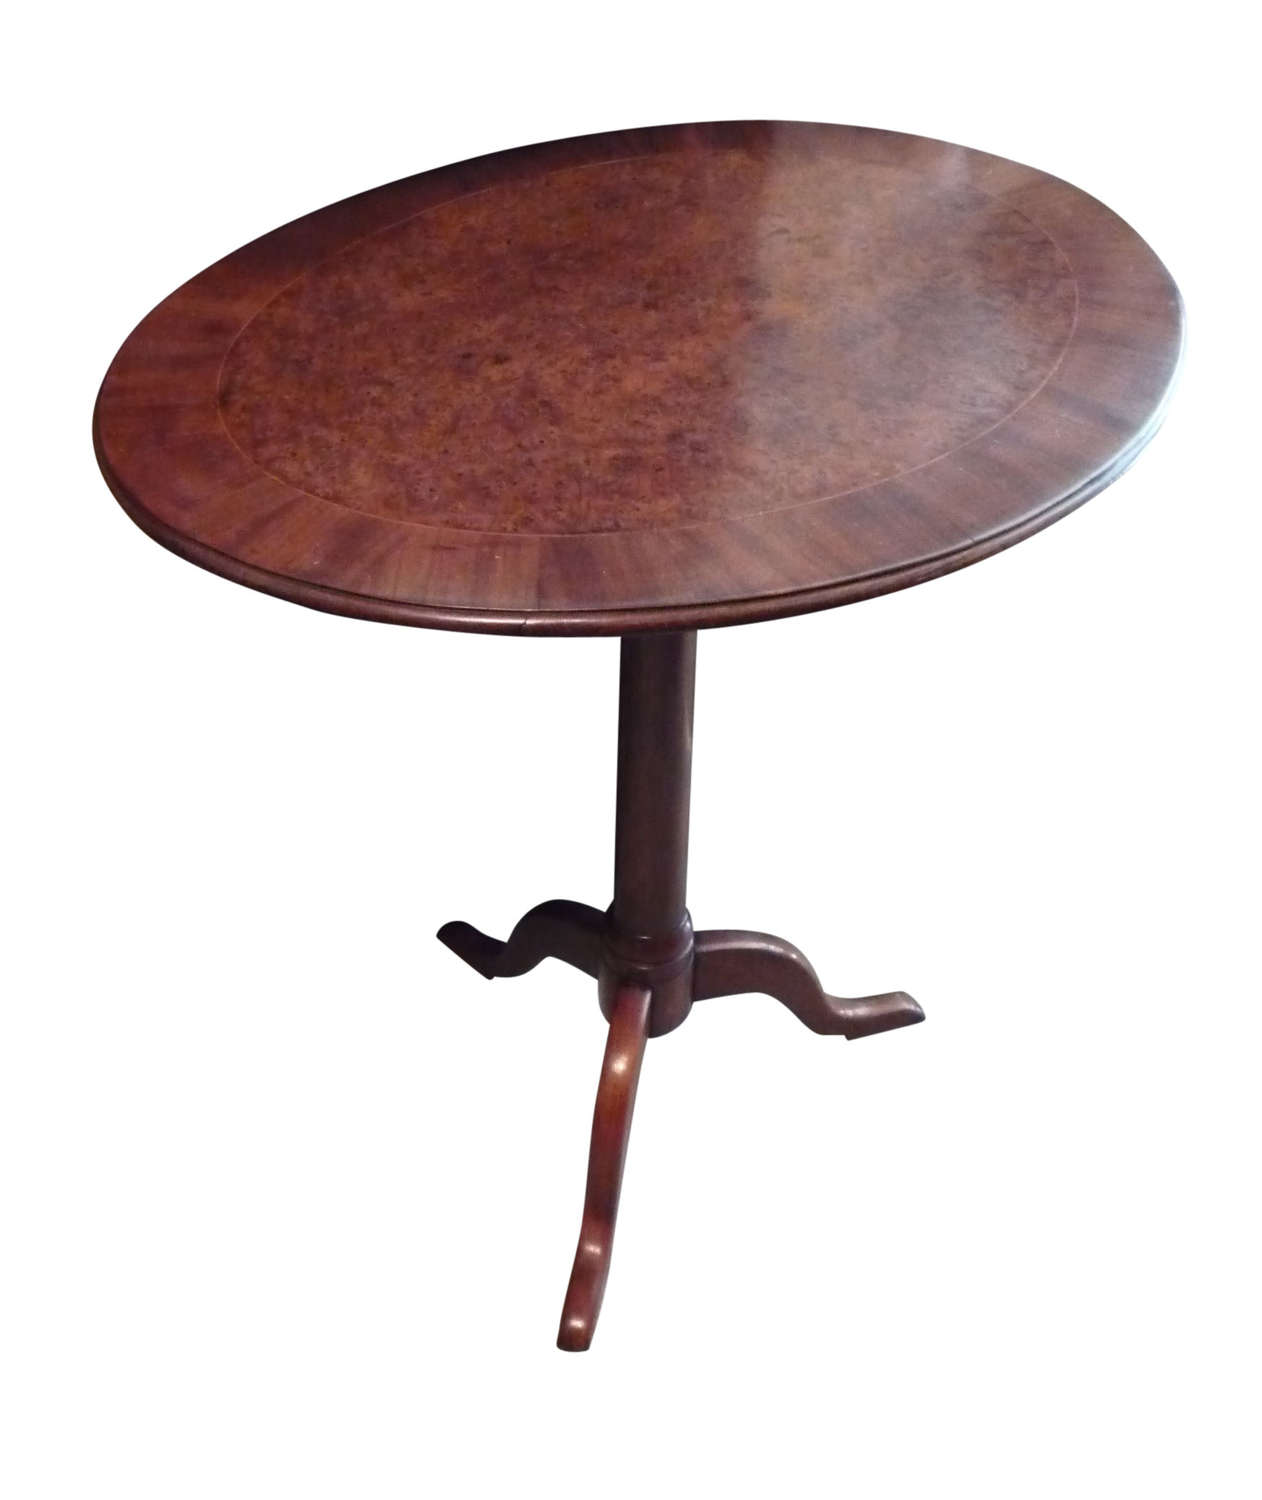 A walnut & burr yew tripod table circa 1830